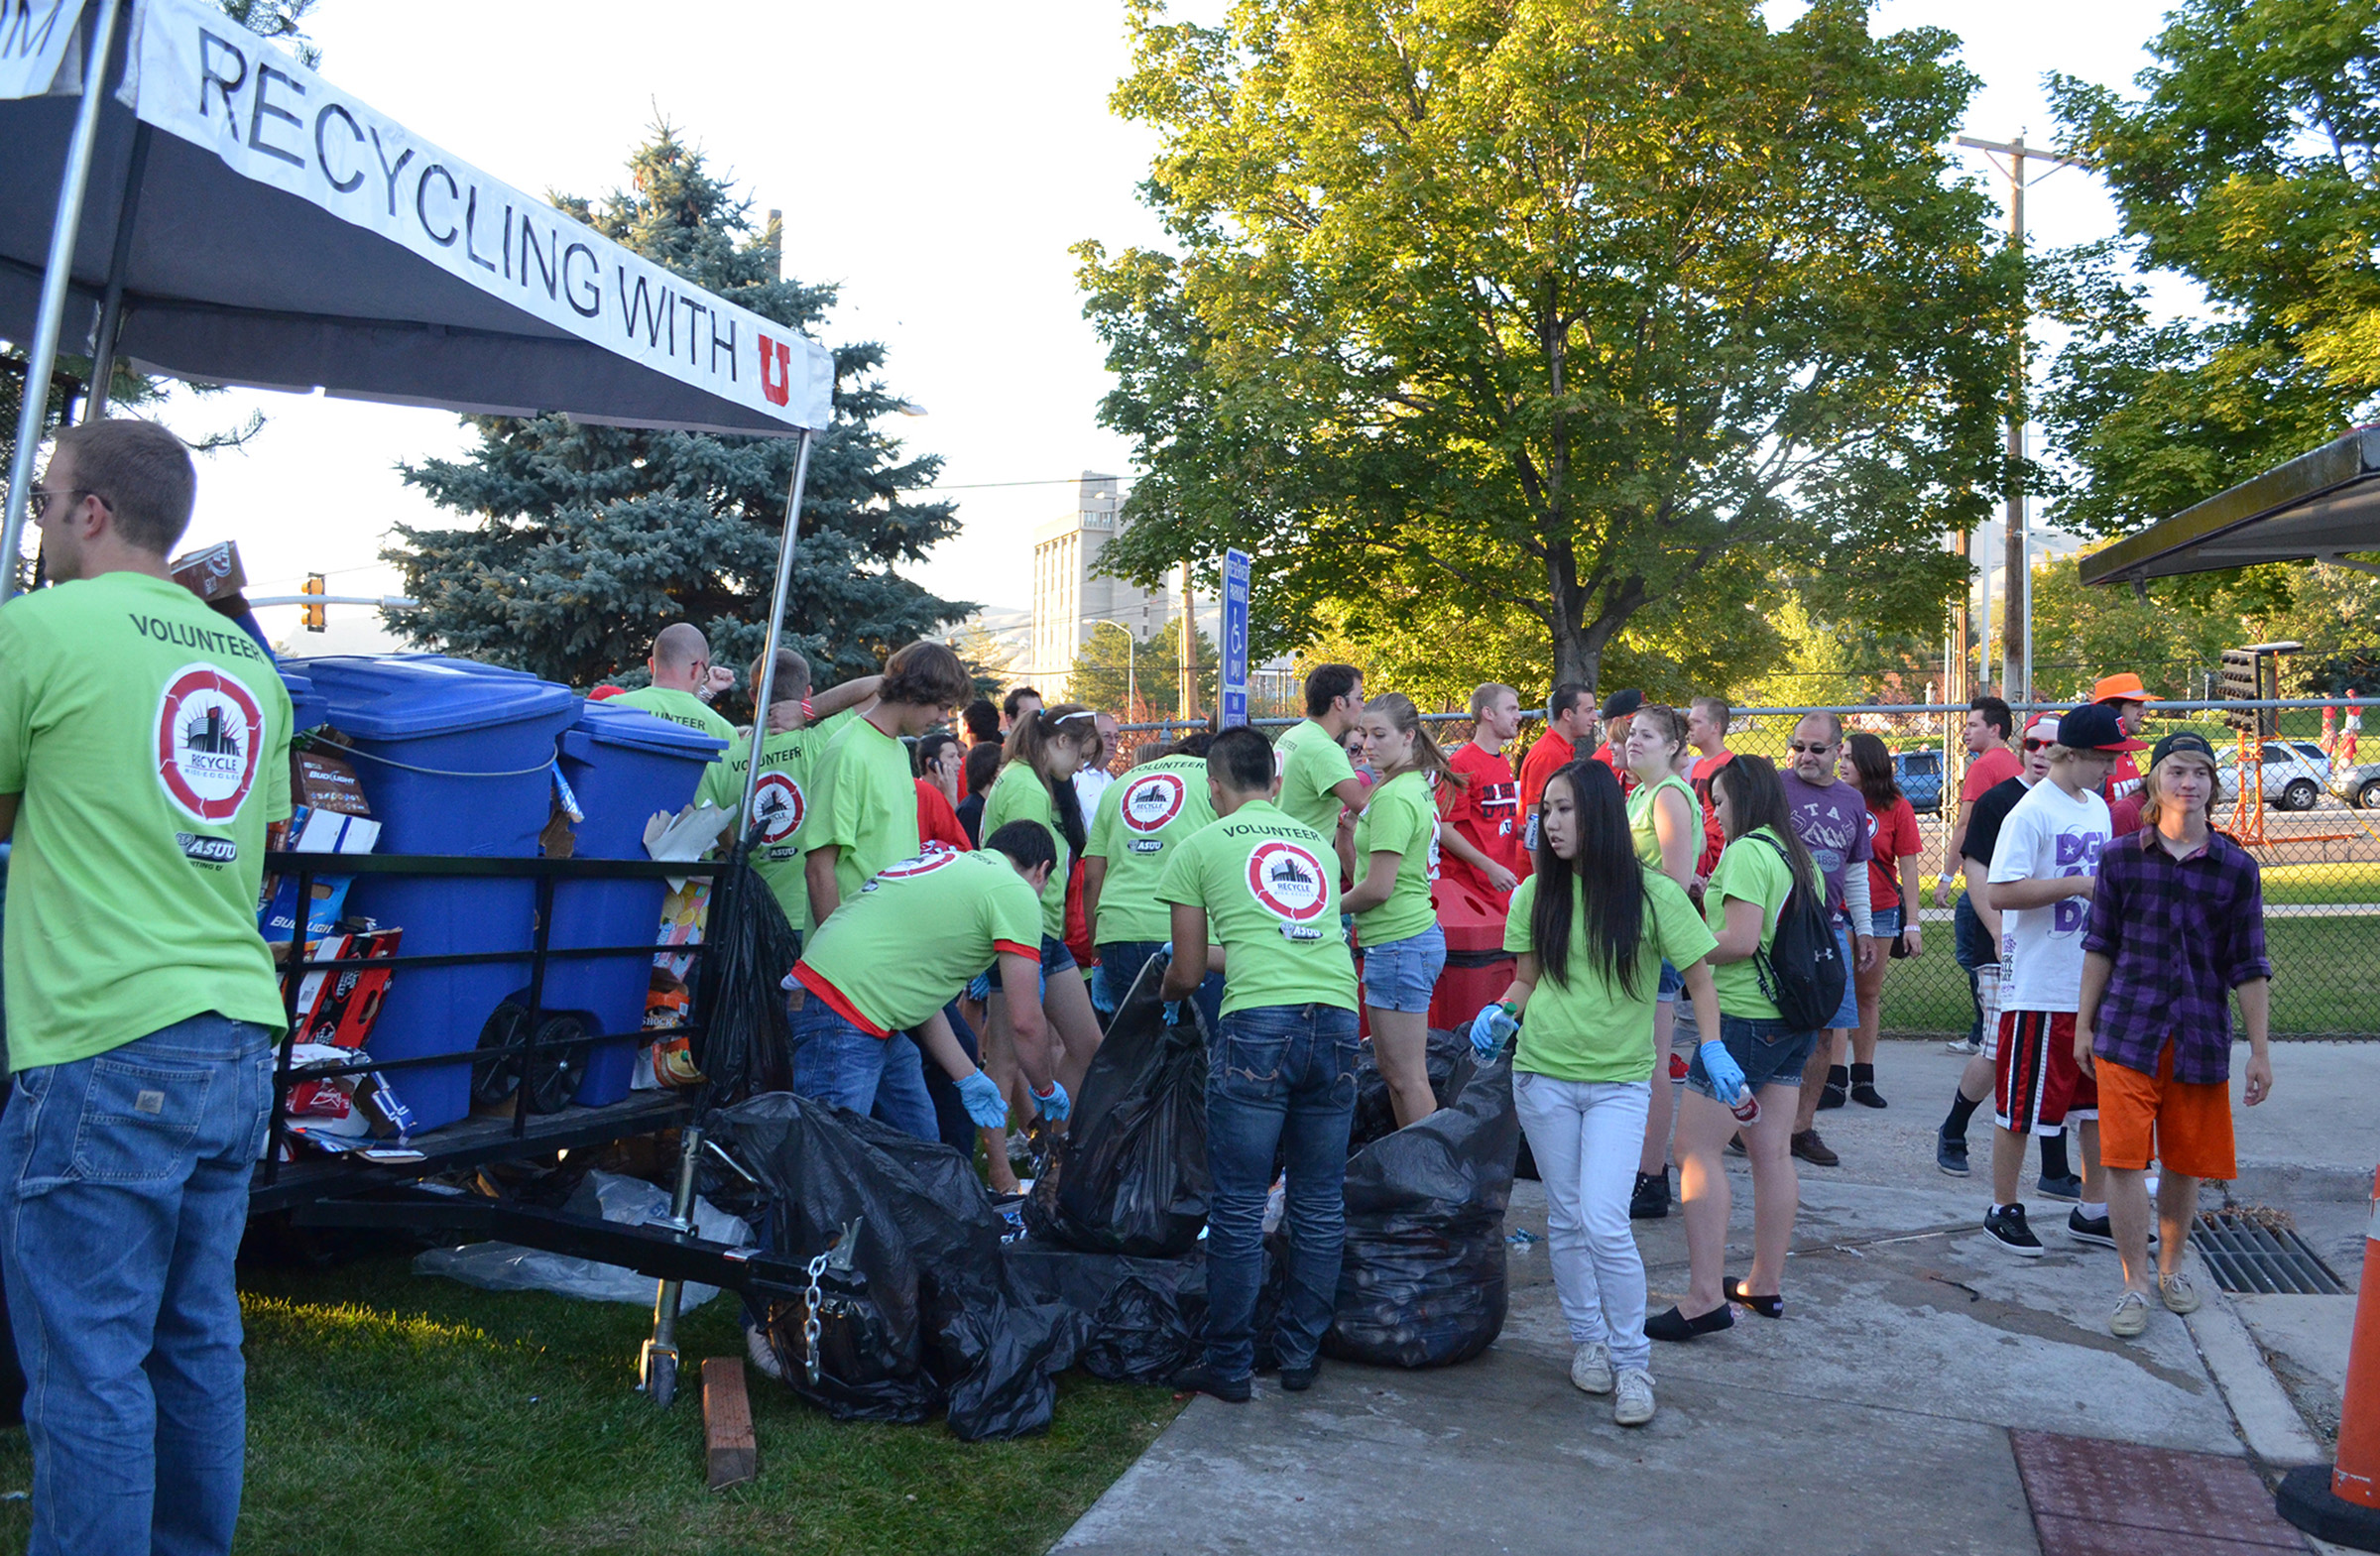 """The student-run Recycle Rice-Eccles initiative aims to prevent recyclable items from entering landfills, collecting roughly 25,000 pounds in cans, bottles and other recyclables annually from football tailgating lots. This is one of many ongoing efforts the U has made to """"green"""" university Athletics."""